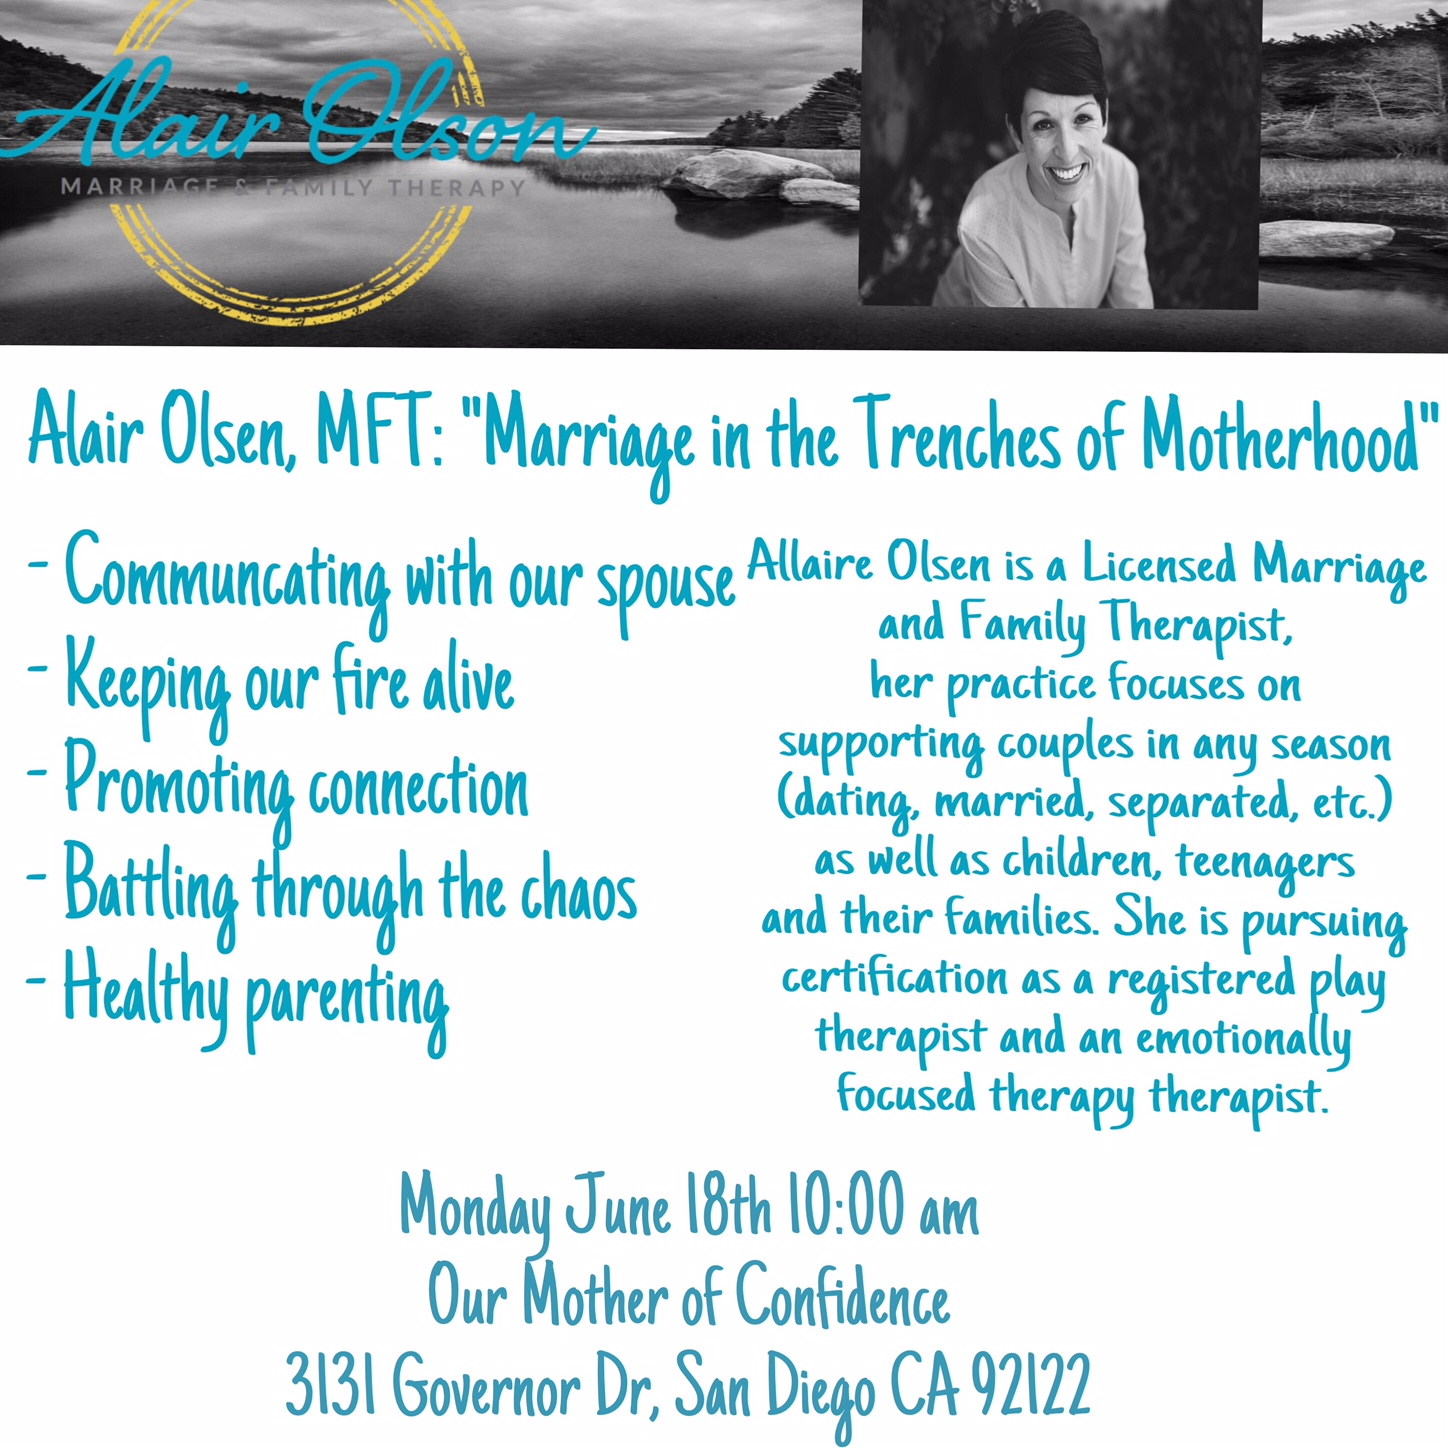 MOPS ( Mother's Group) Speaker: Marriage in the Trenches of Motherhood; Speaker